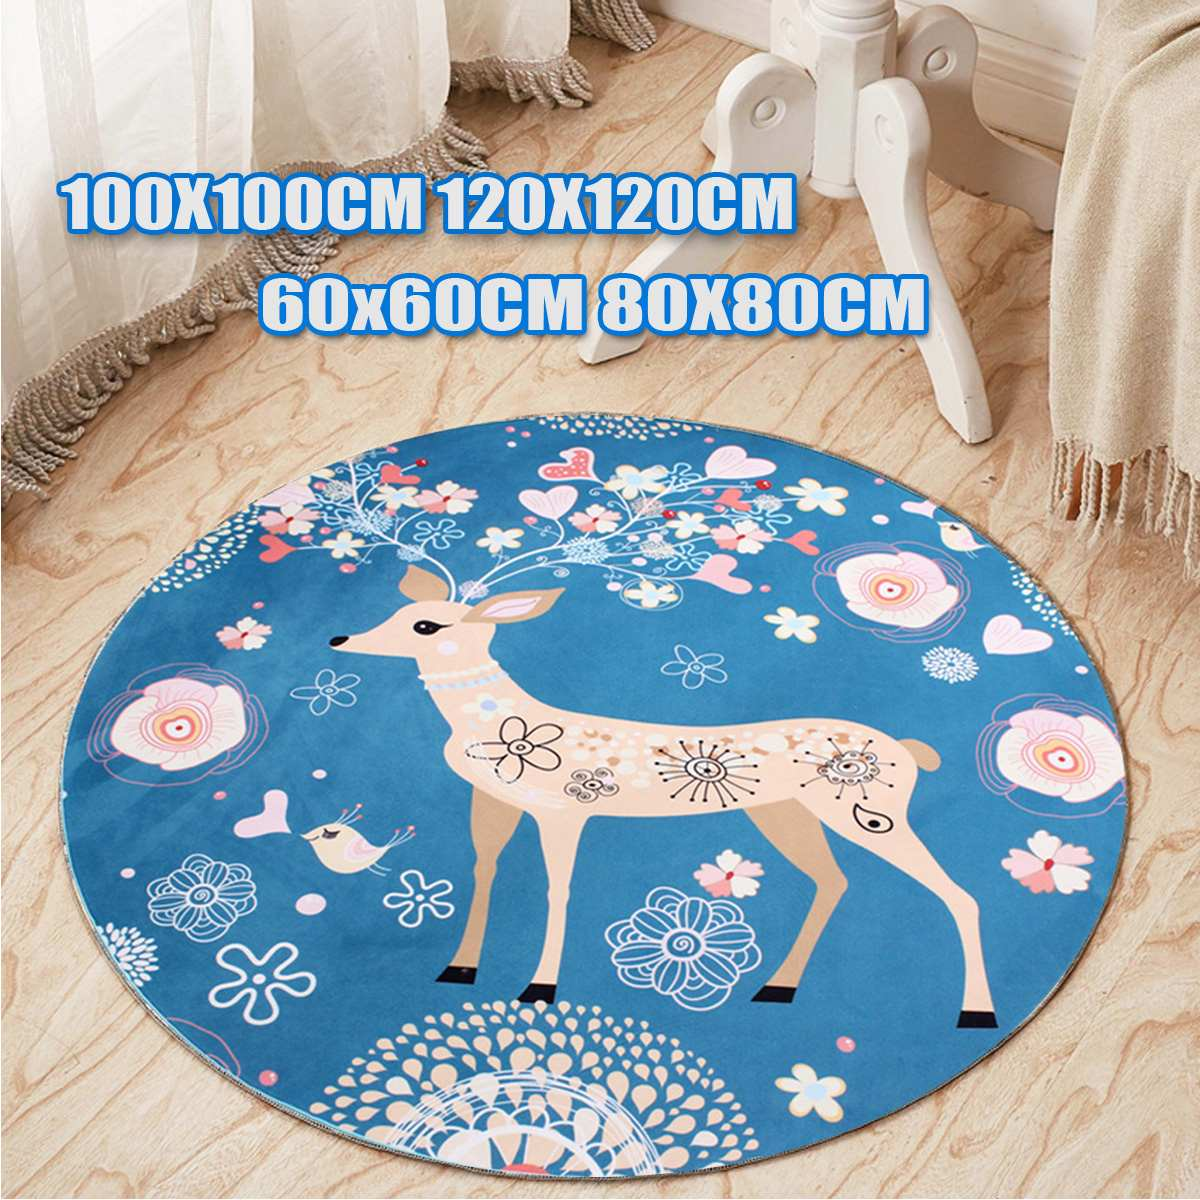 Cute Deer Heart Floral Pattern Round Floor Mats Computer Chair Mat Antiskid Carpet For Living Room Bedroom Kids Room